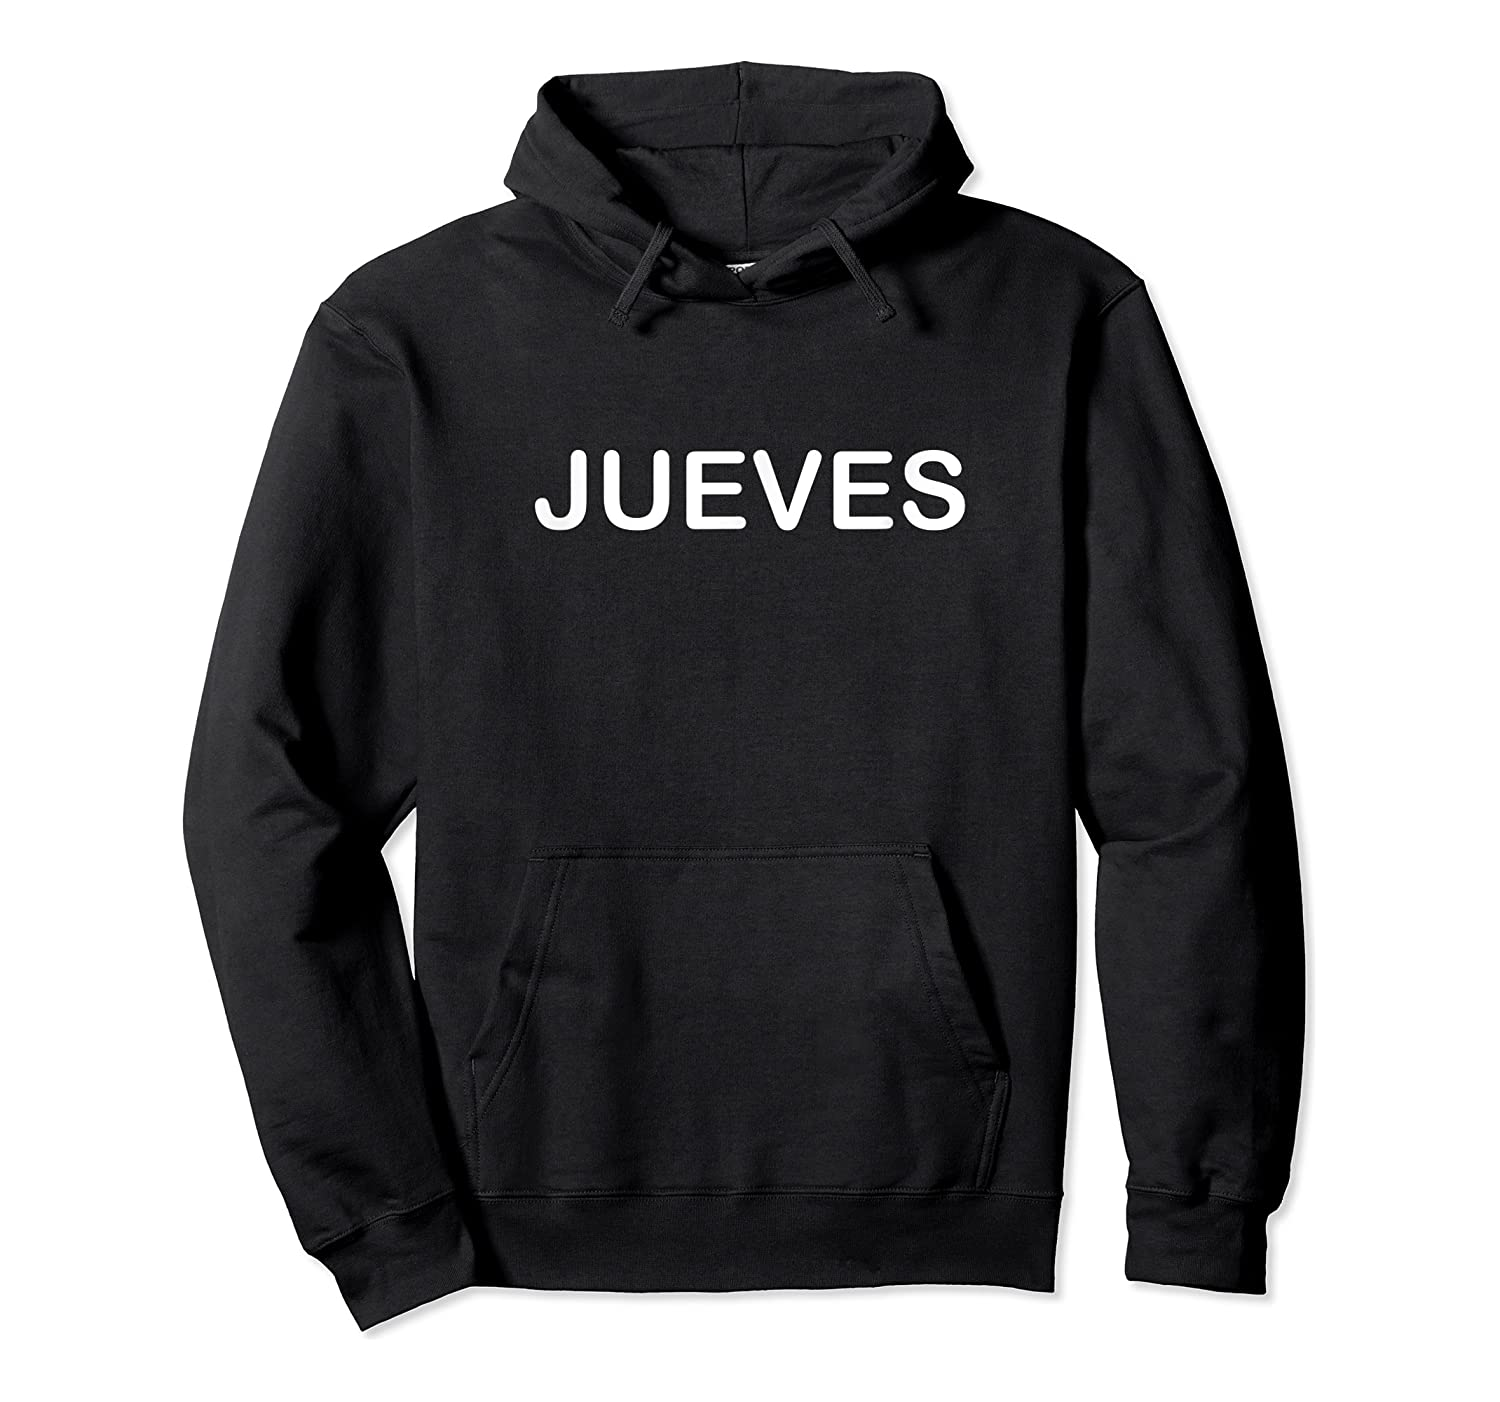 Thursday Day Of The Week In Spanish Jueves Shirts Unisex Pullover Hoodie